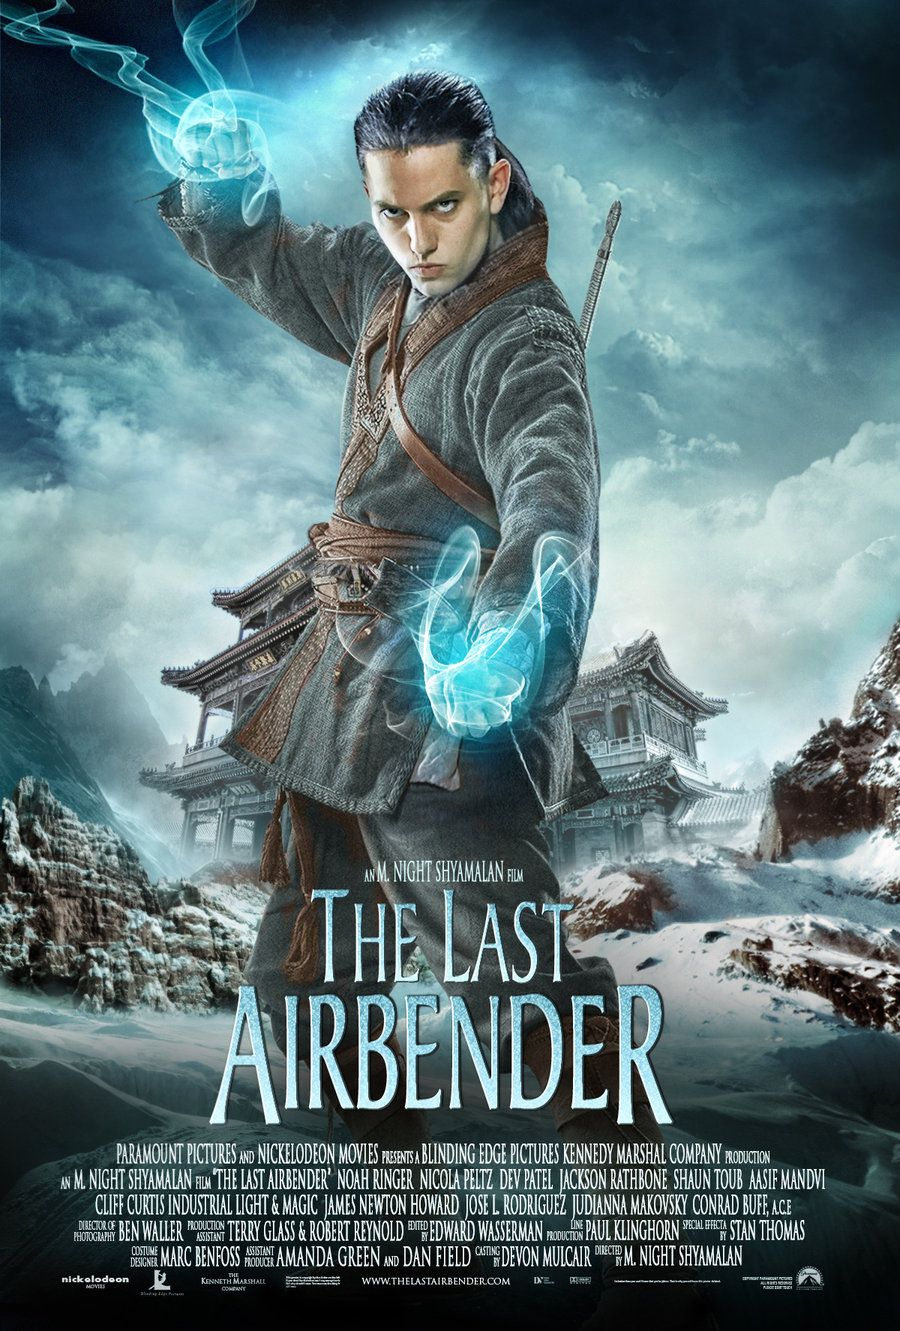 Last Airbender Movie Poster By Imlearning On Deviantart The Last Airbender Movie The Last Airbender Movie Posters